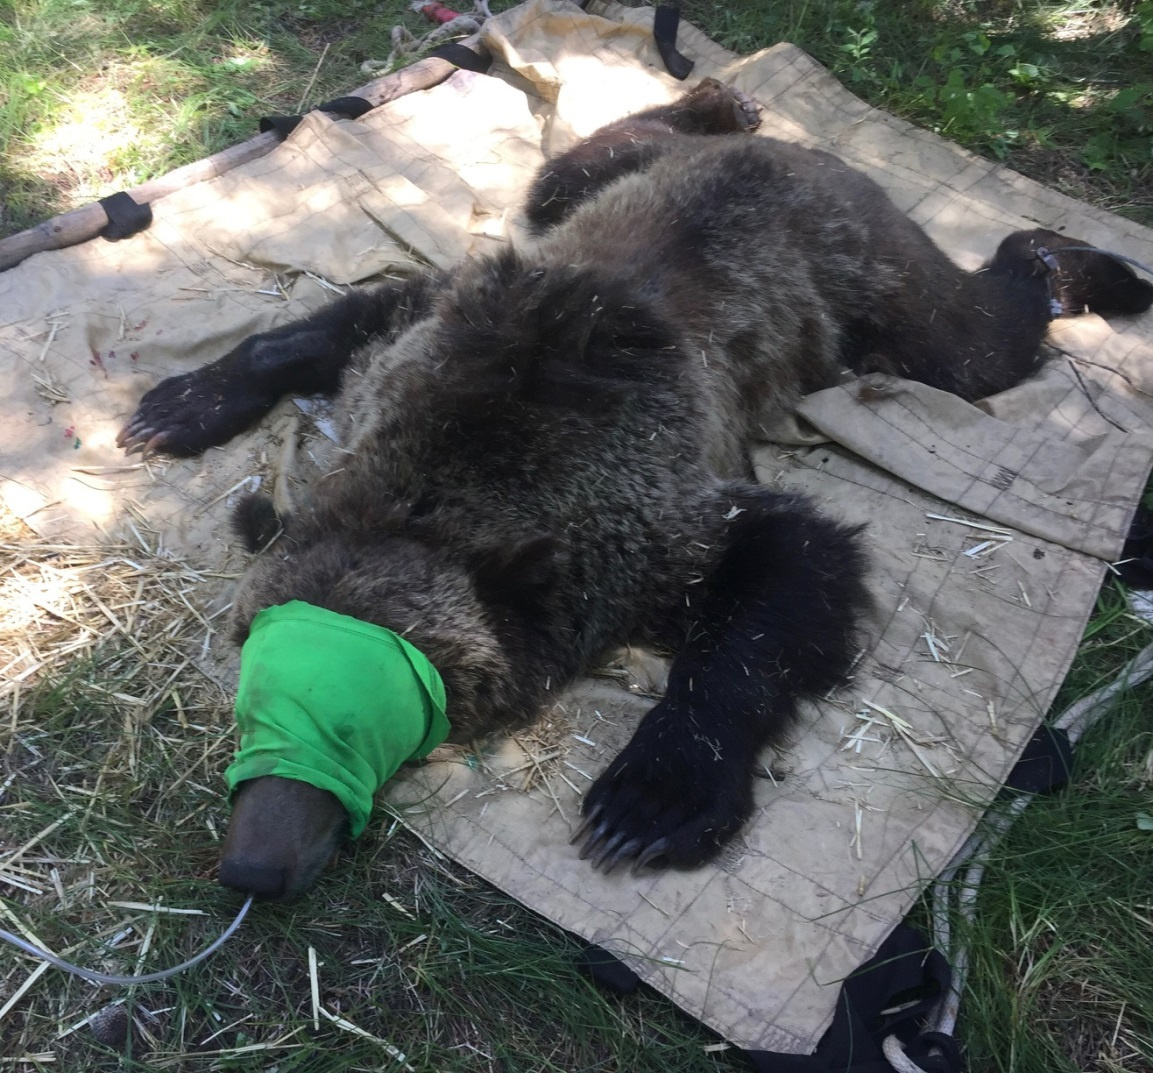 News 2018 The Yellow Pine Times Page 3 Animal Scarer Hobby Circuits And Projects Fish Game Personnel Trapped A Sub Adult Male Grizzly Bear From Mill Creek Campground In Island Park On July 11 After Receiving Multiple Reports Of